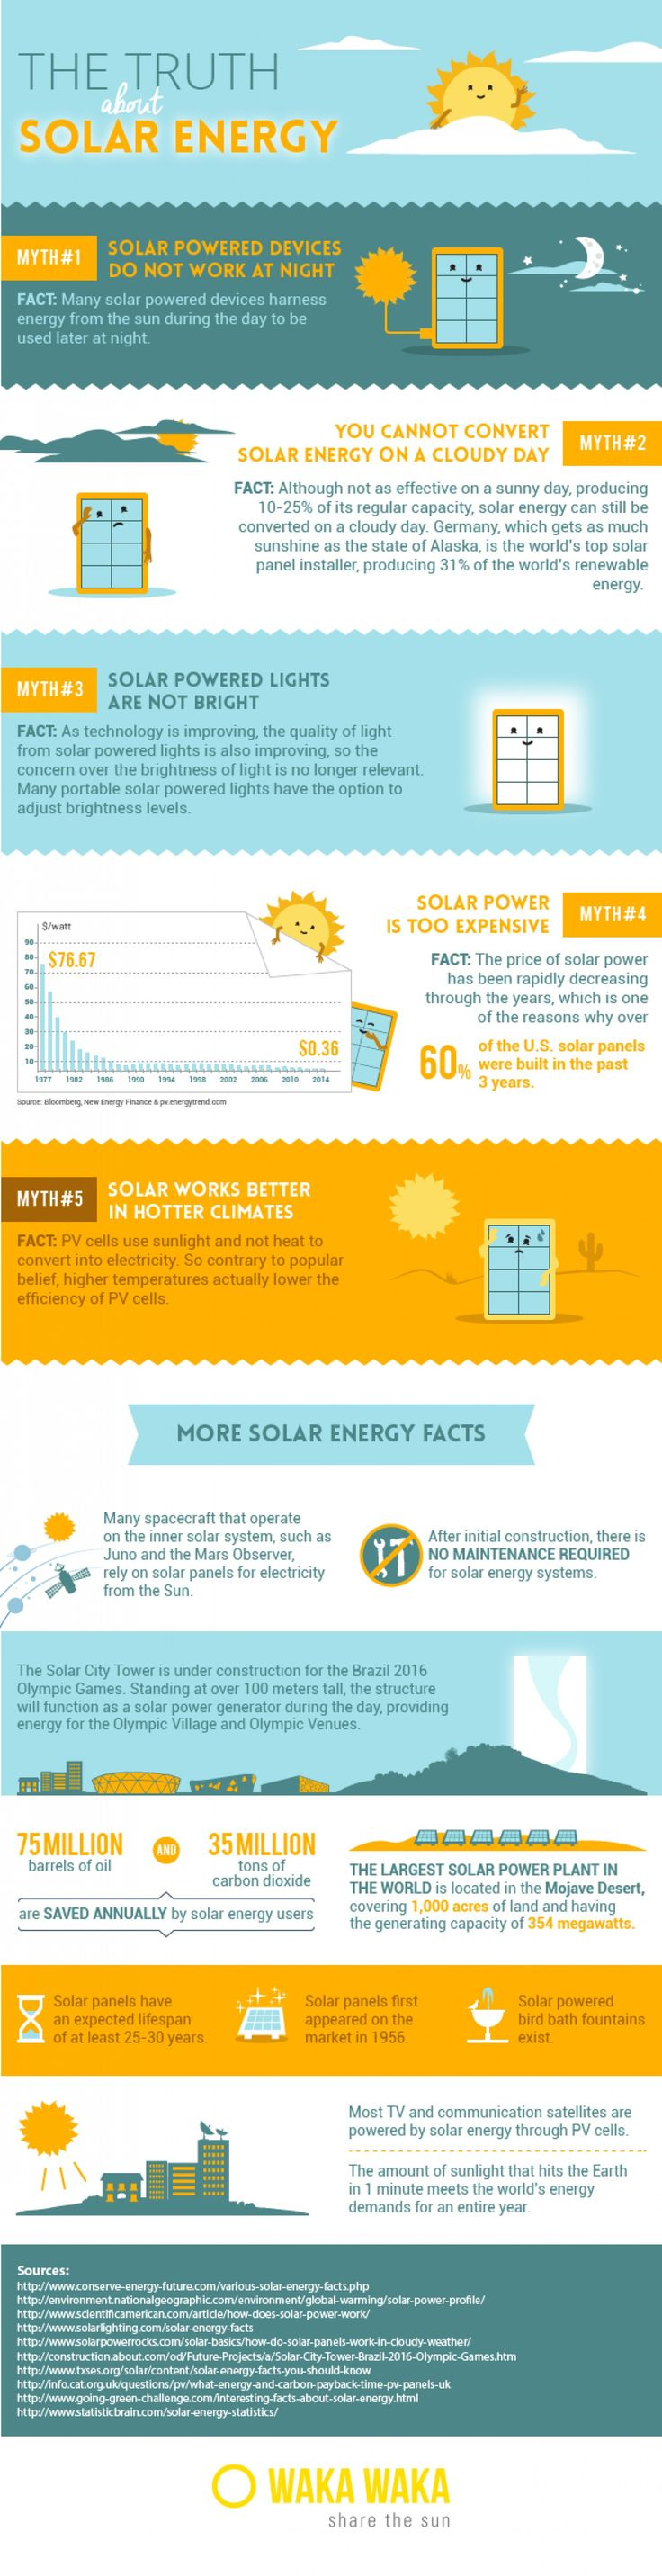 Solar Energy Facts & Myths Infographic